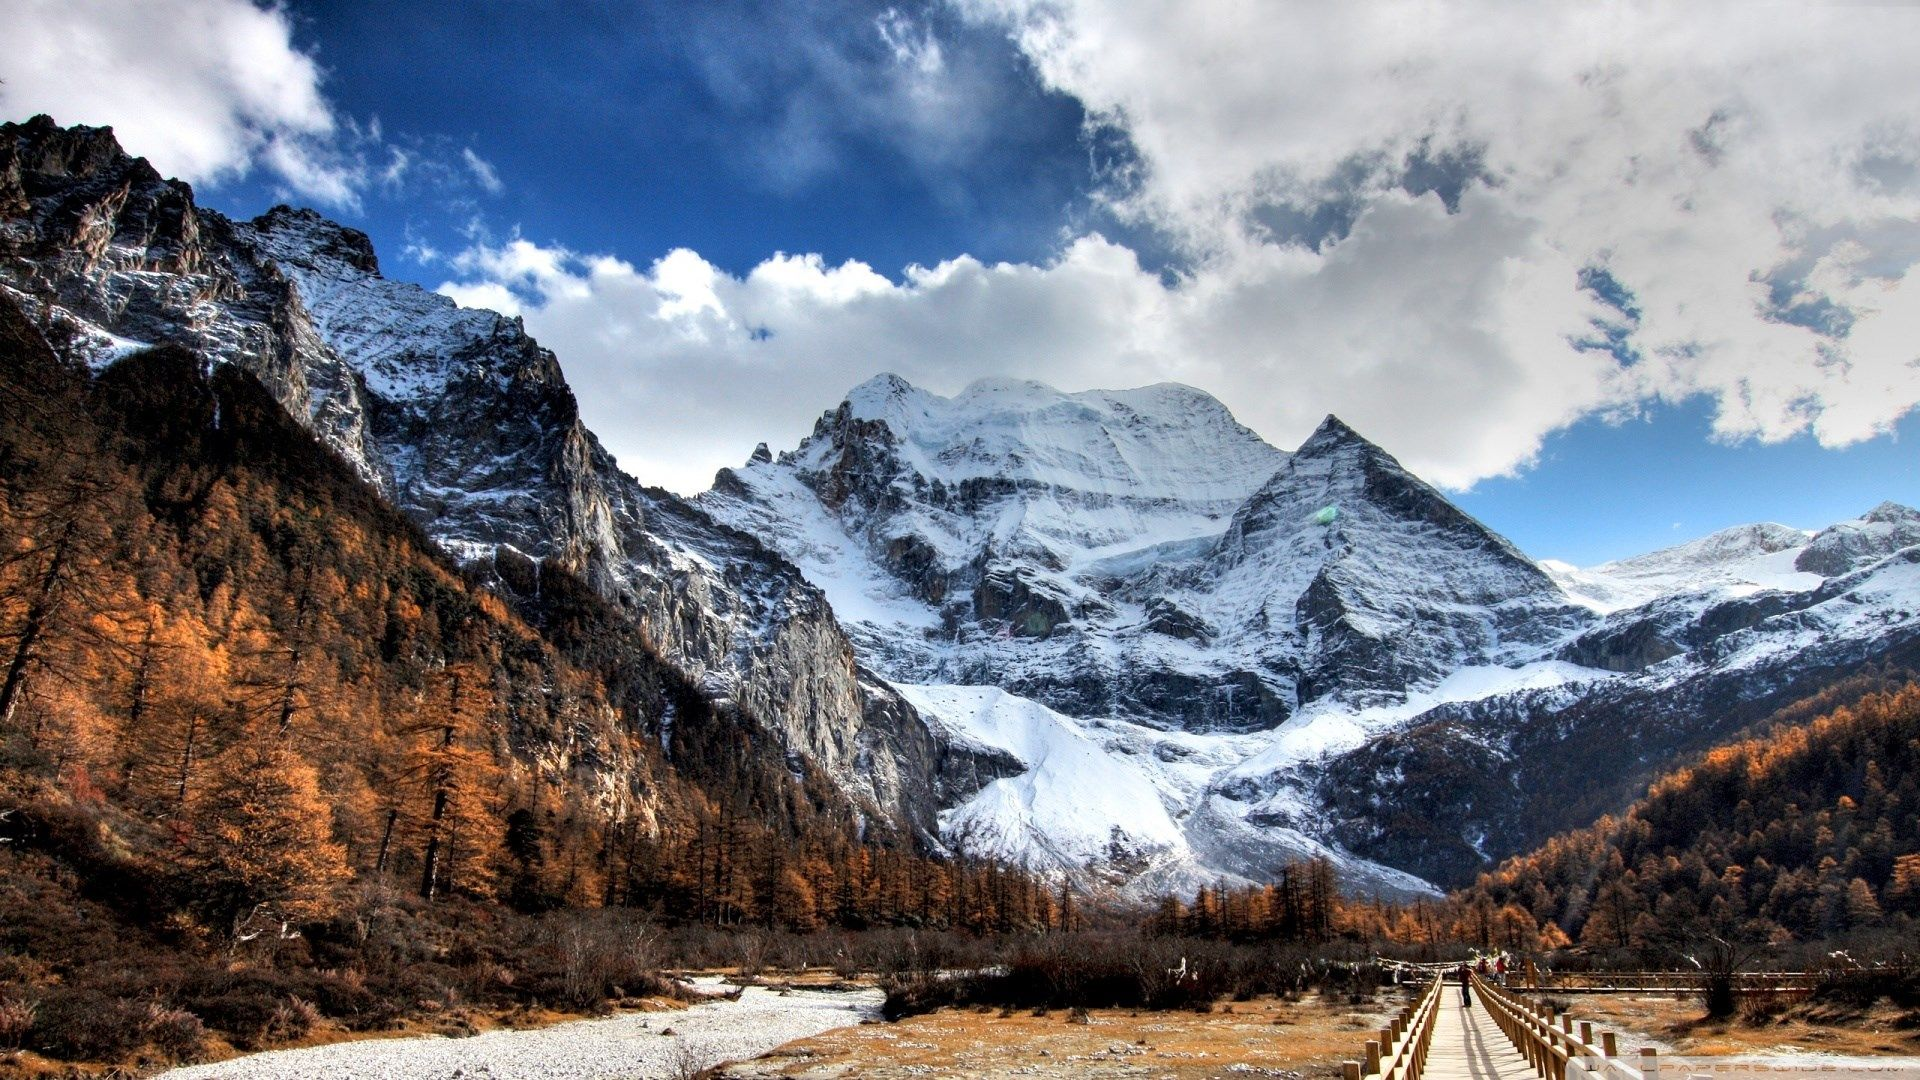 Mountains Wallpaper High Resolution Wallpaper Hd With Images